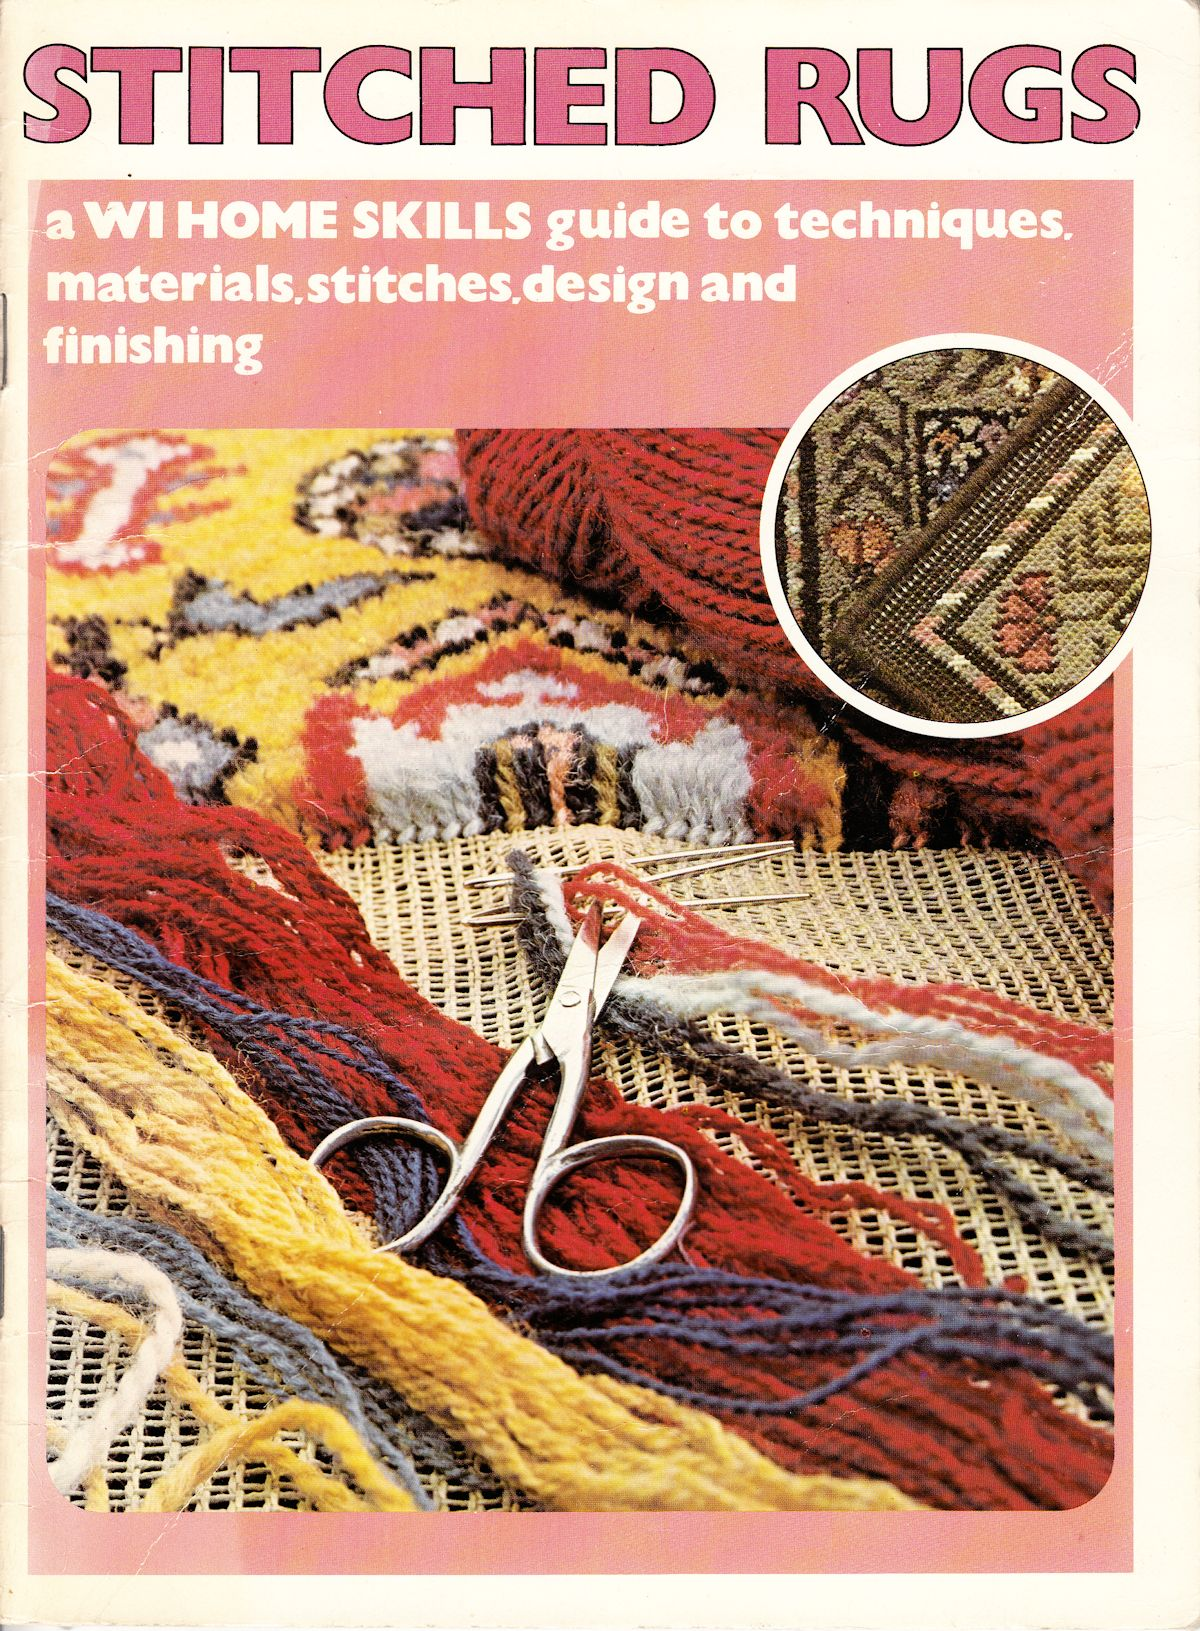 A Social History Of Latch Hook Rug Making